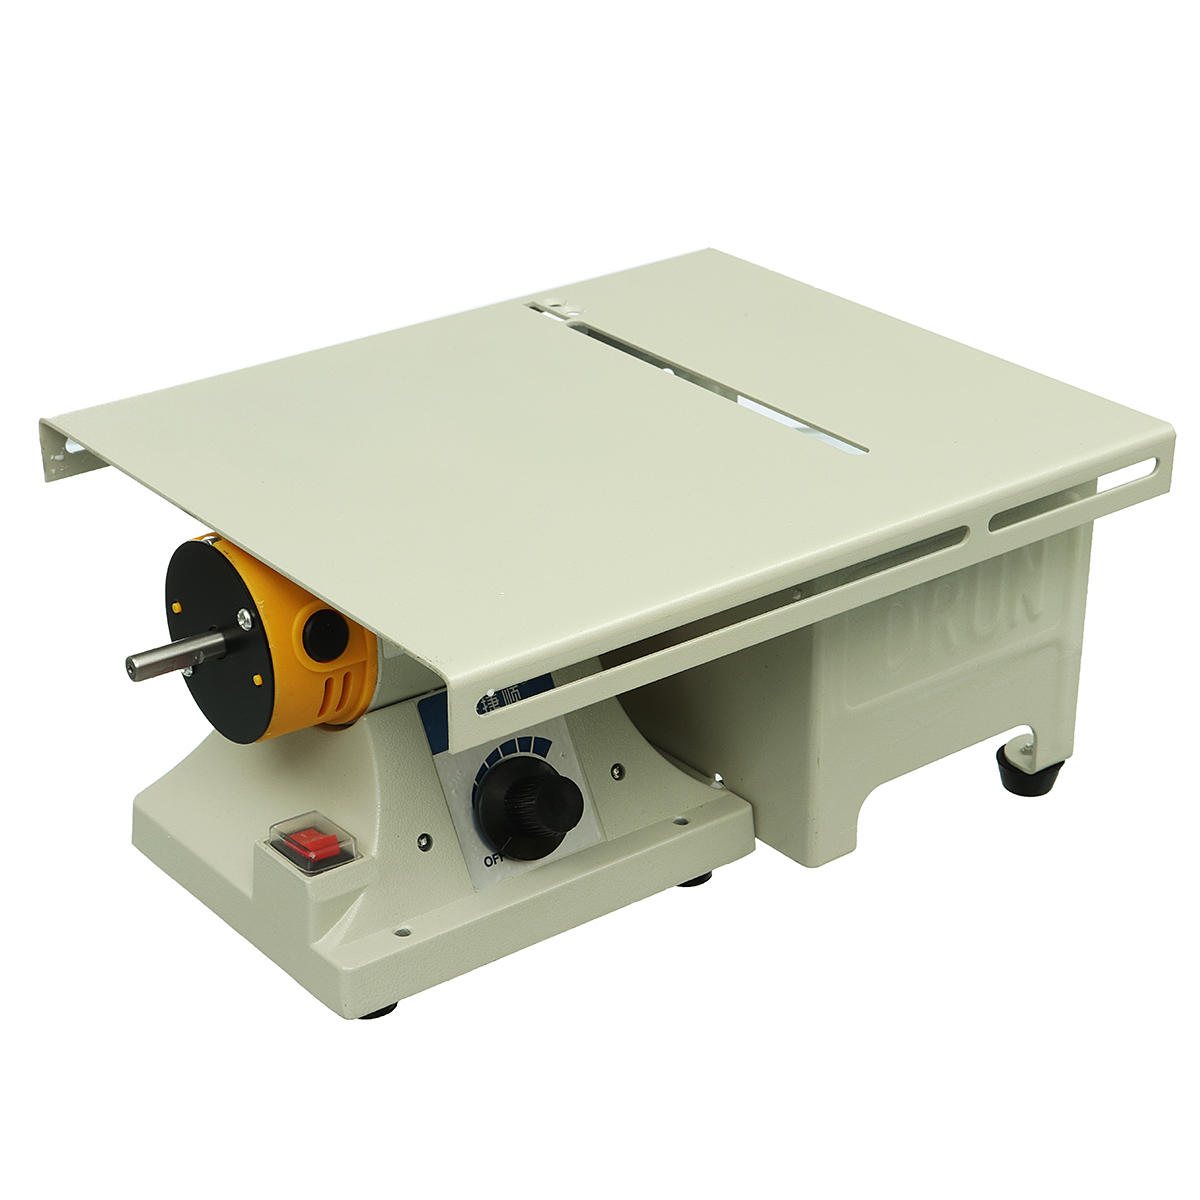 350w Mini Table Bench Saw Woodworking Bench Lathe Electric Polisher Grinder Cutt Us 250 99